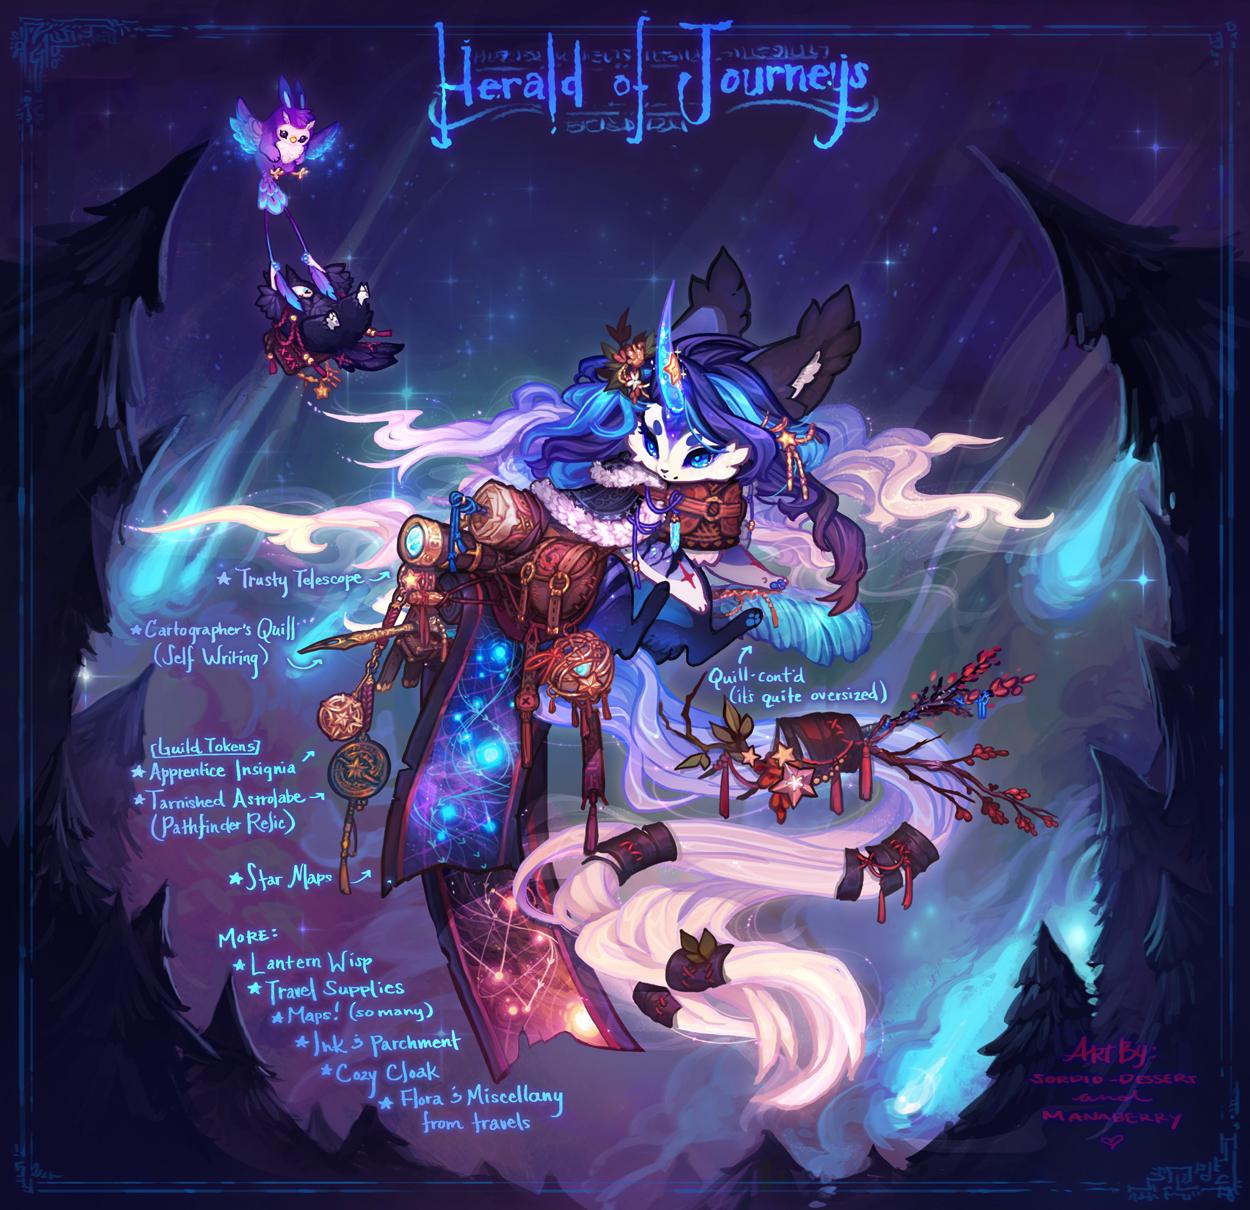 [Auction] Herald of Journeys  [OVER! HAPPY 2017!] by manaberry